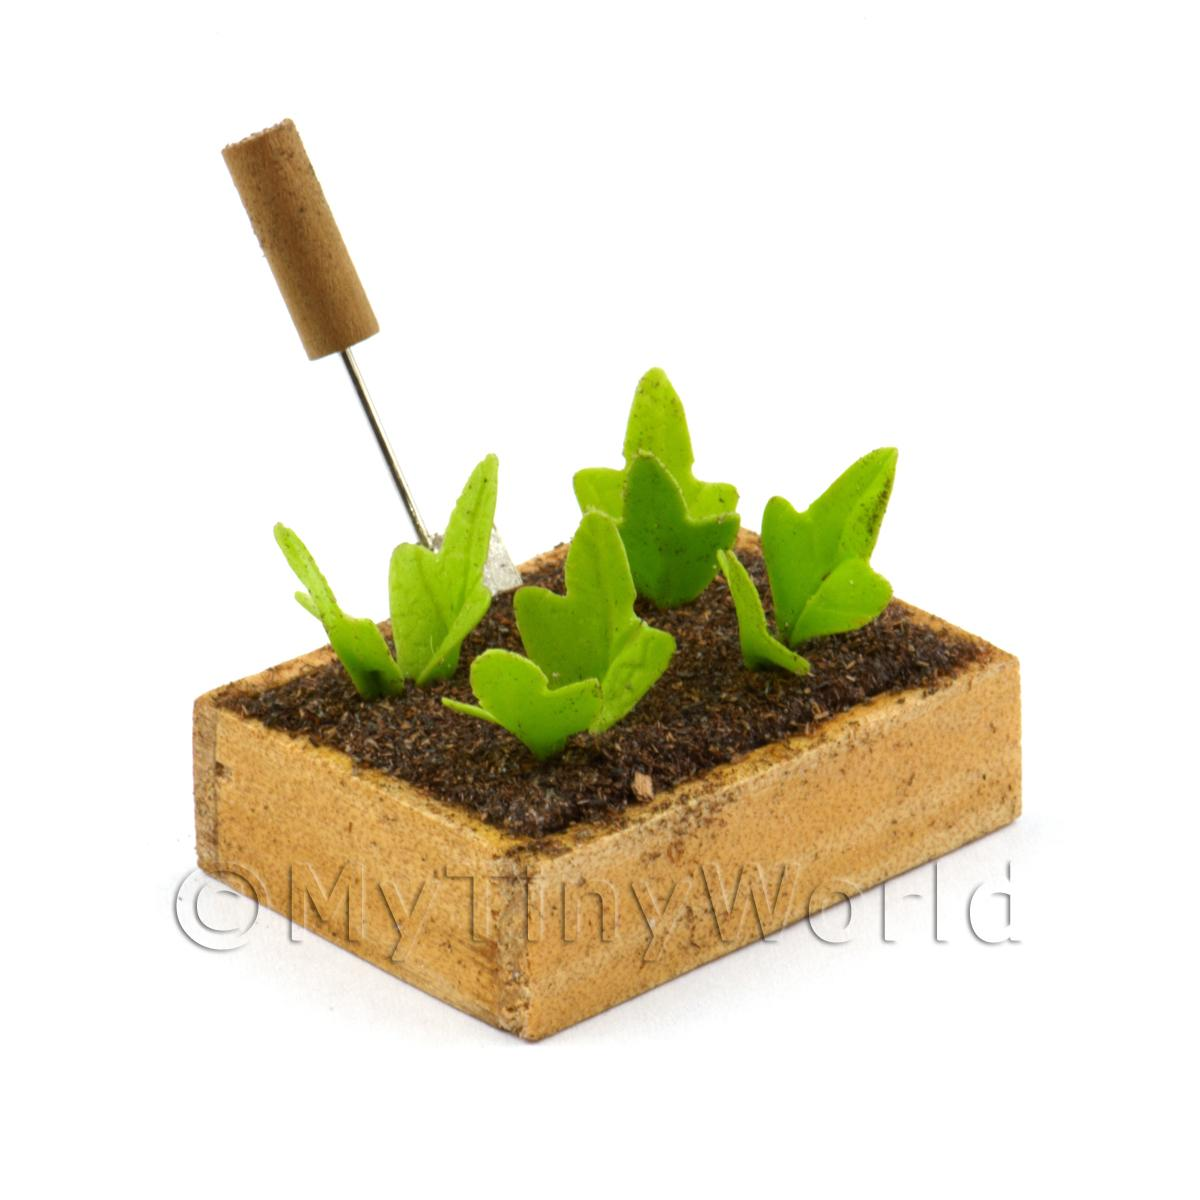 Miniature Garden Wooden Crate With Growing Spinach